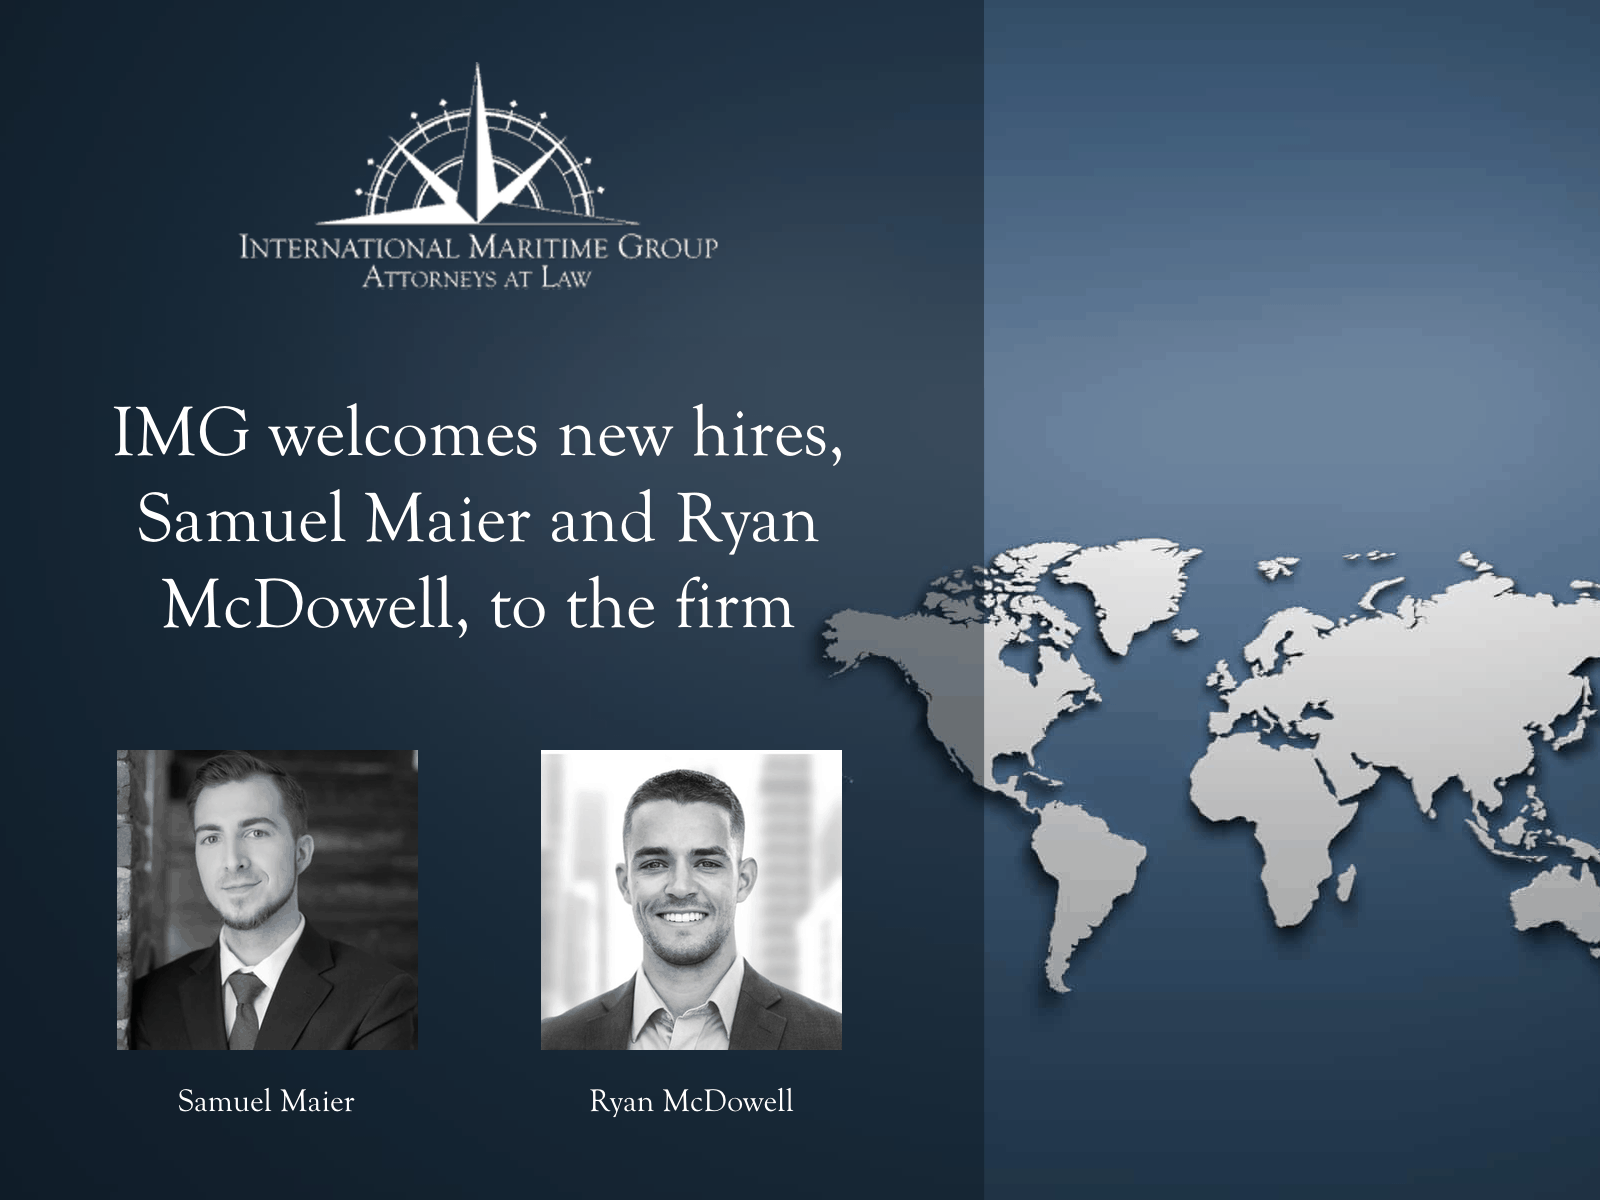 IMG welcomes new hires, Samuel Maier and Ryan McDowell, to the firm